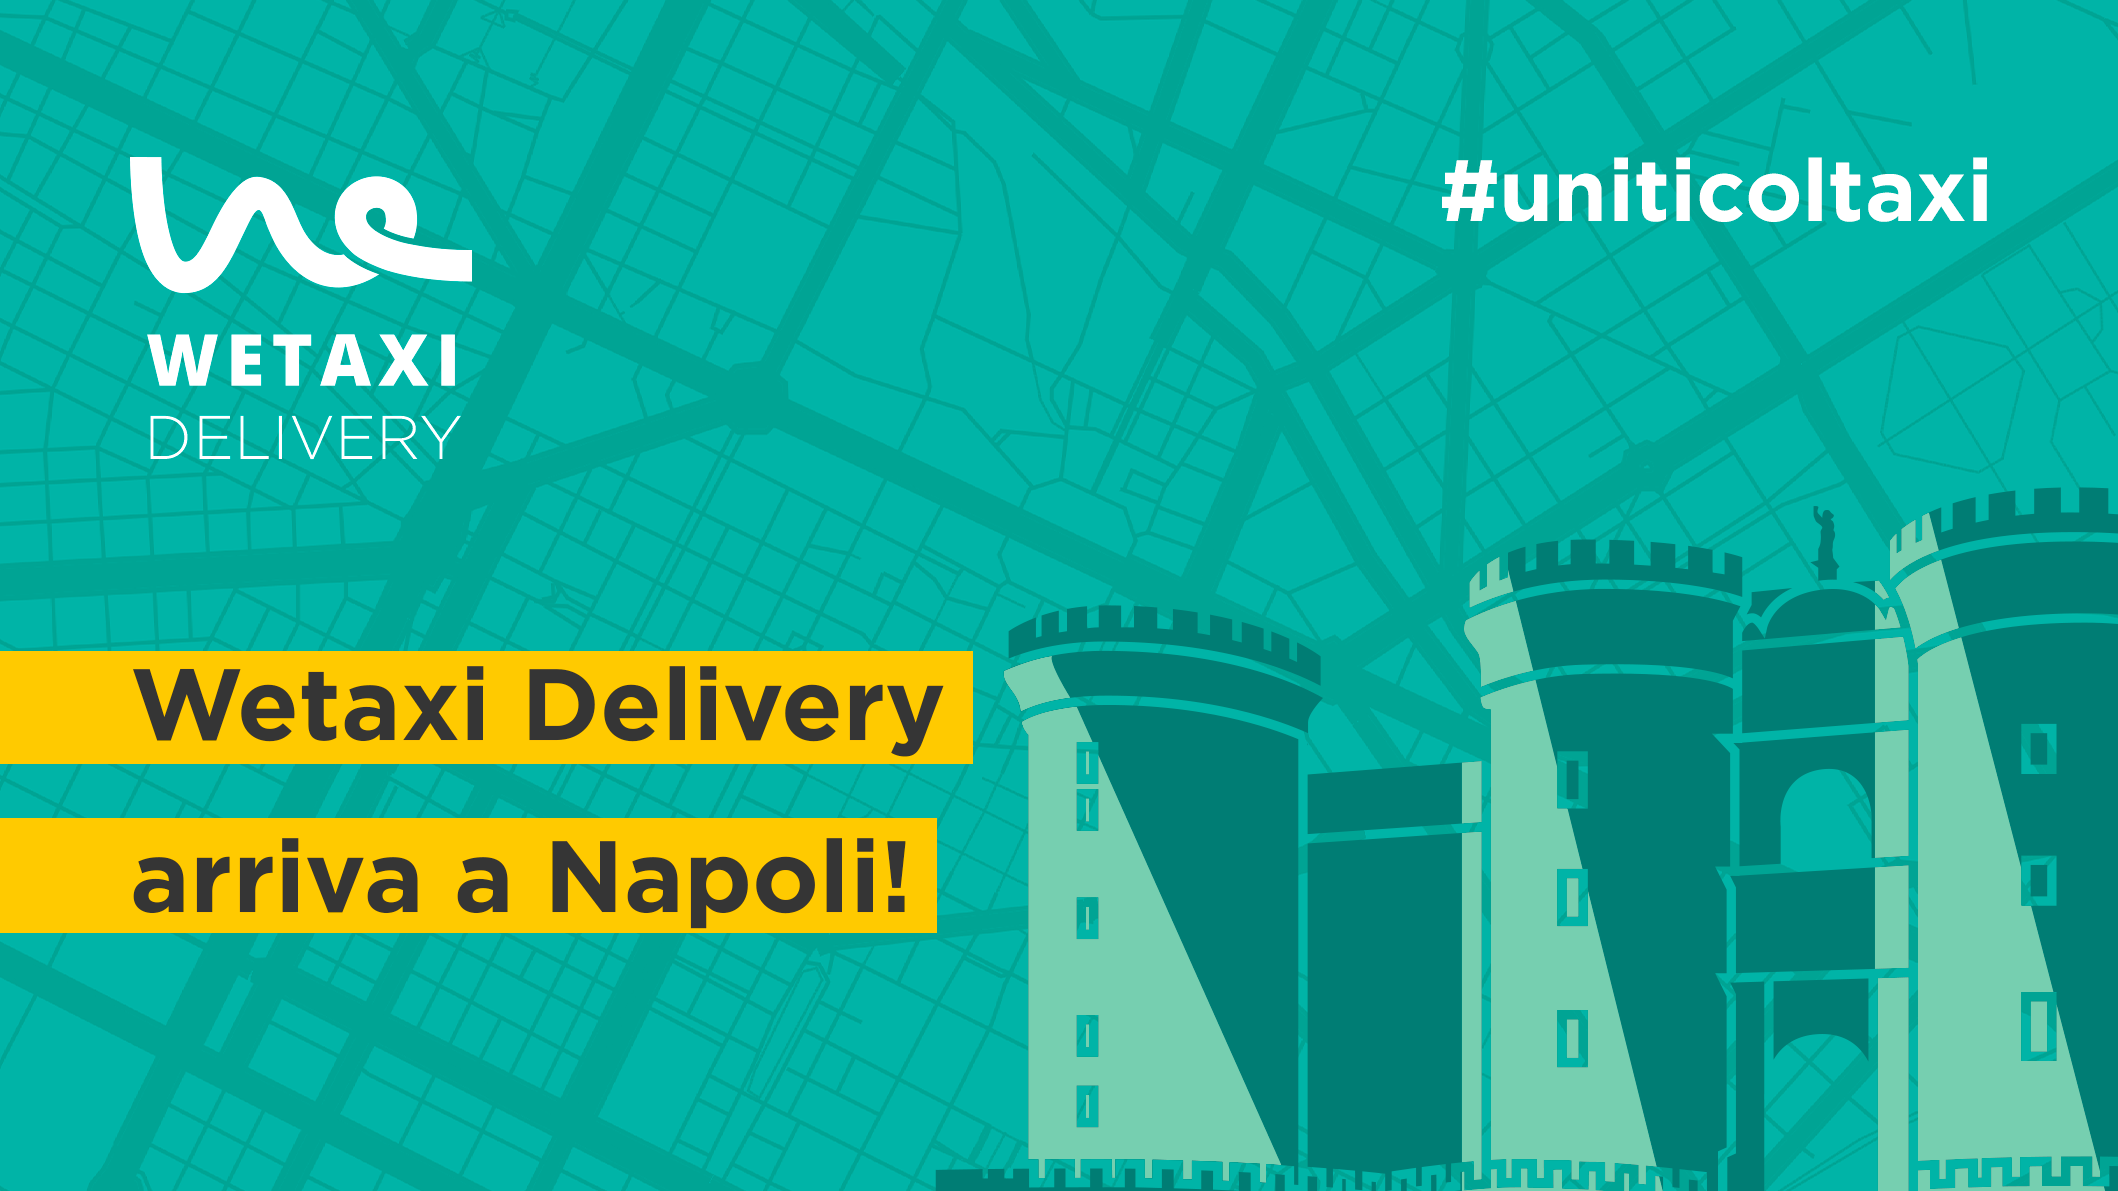 Wetaxi Delivery a Napoli